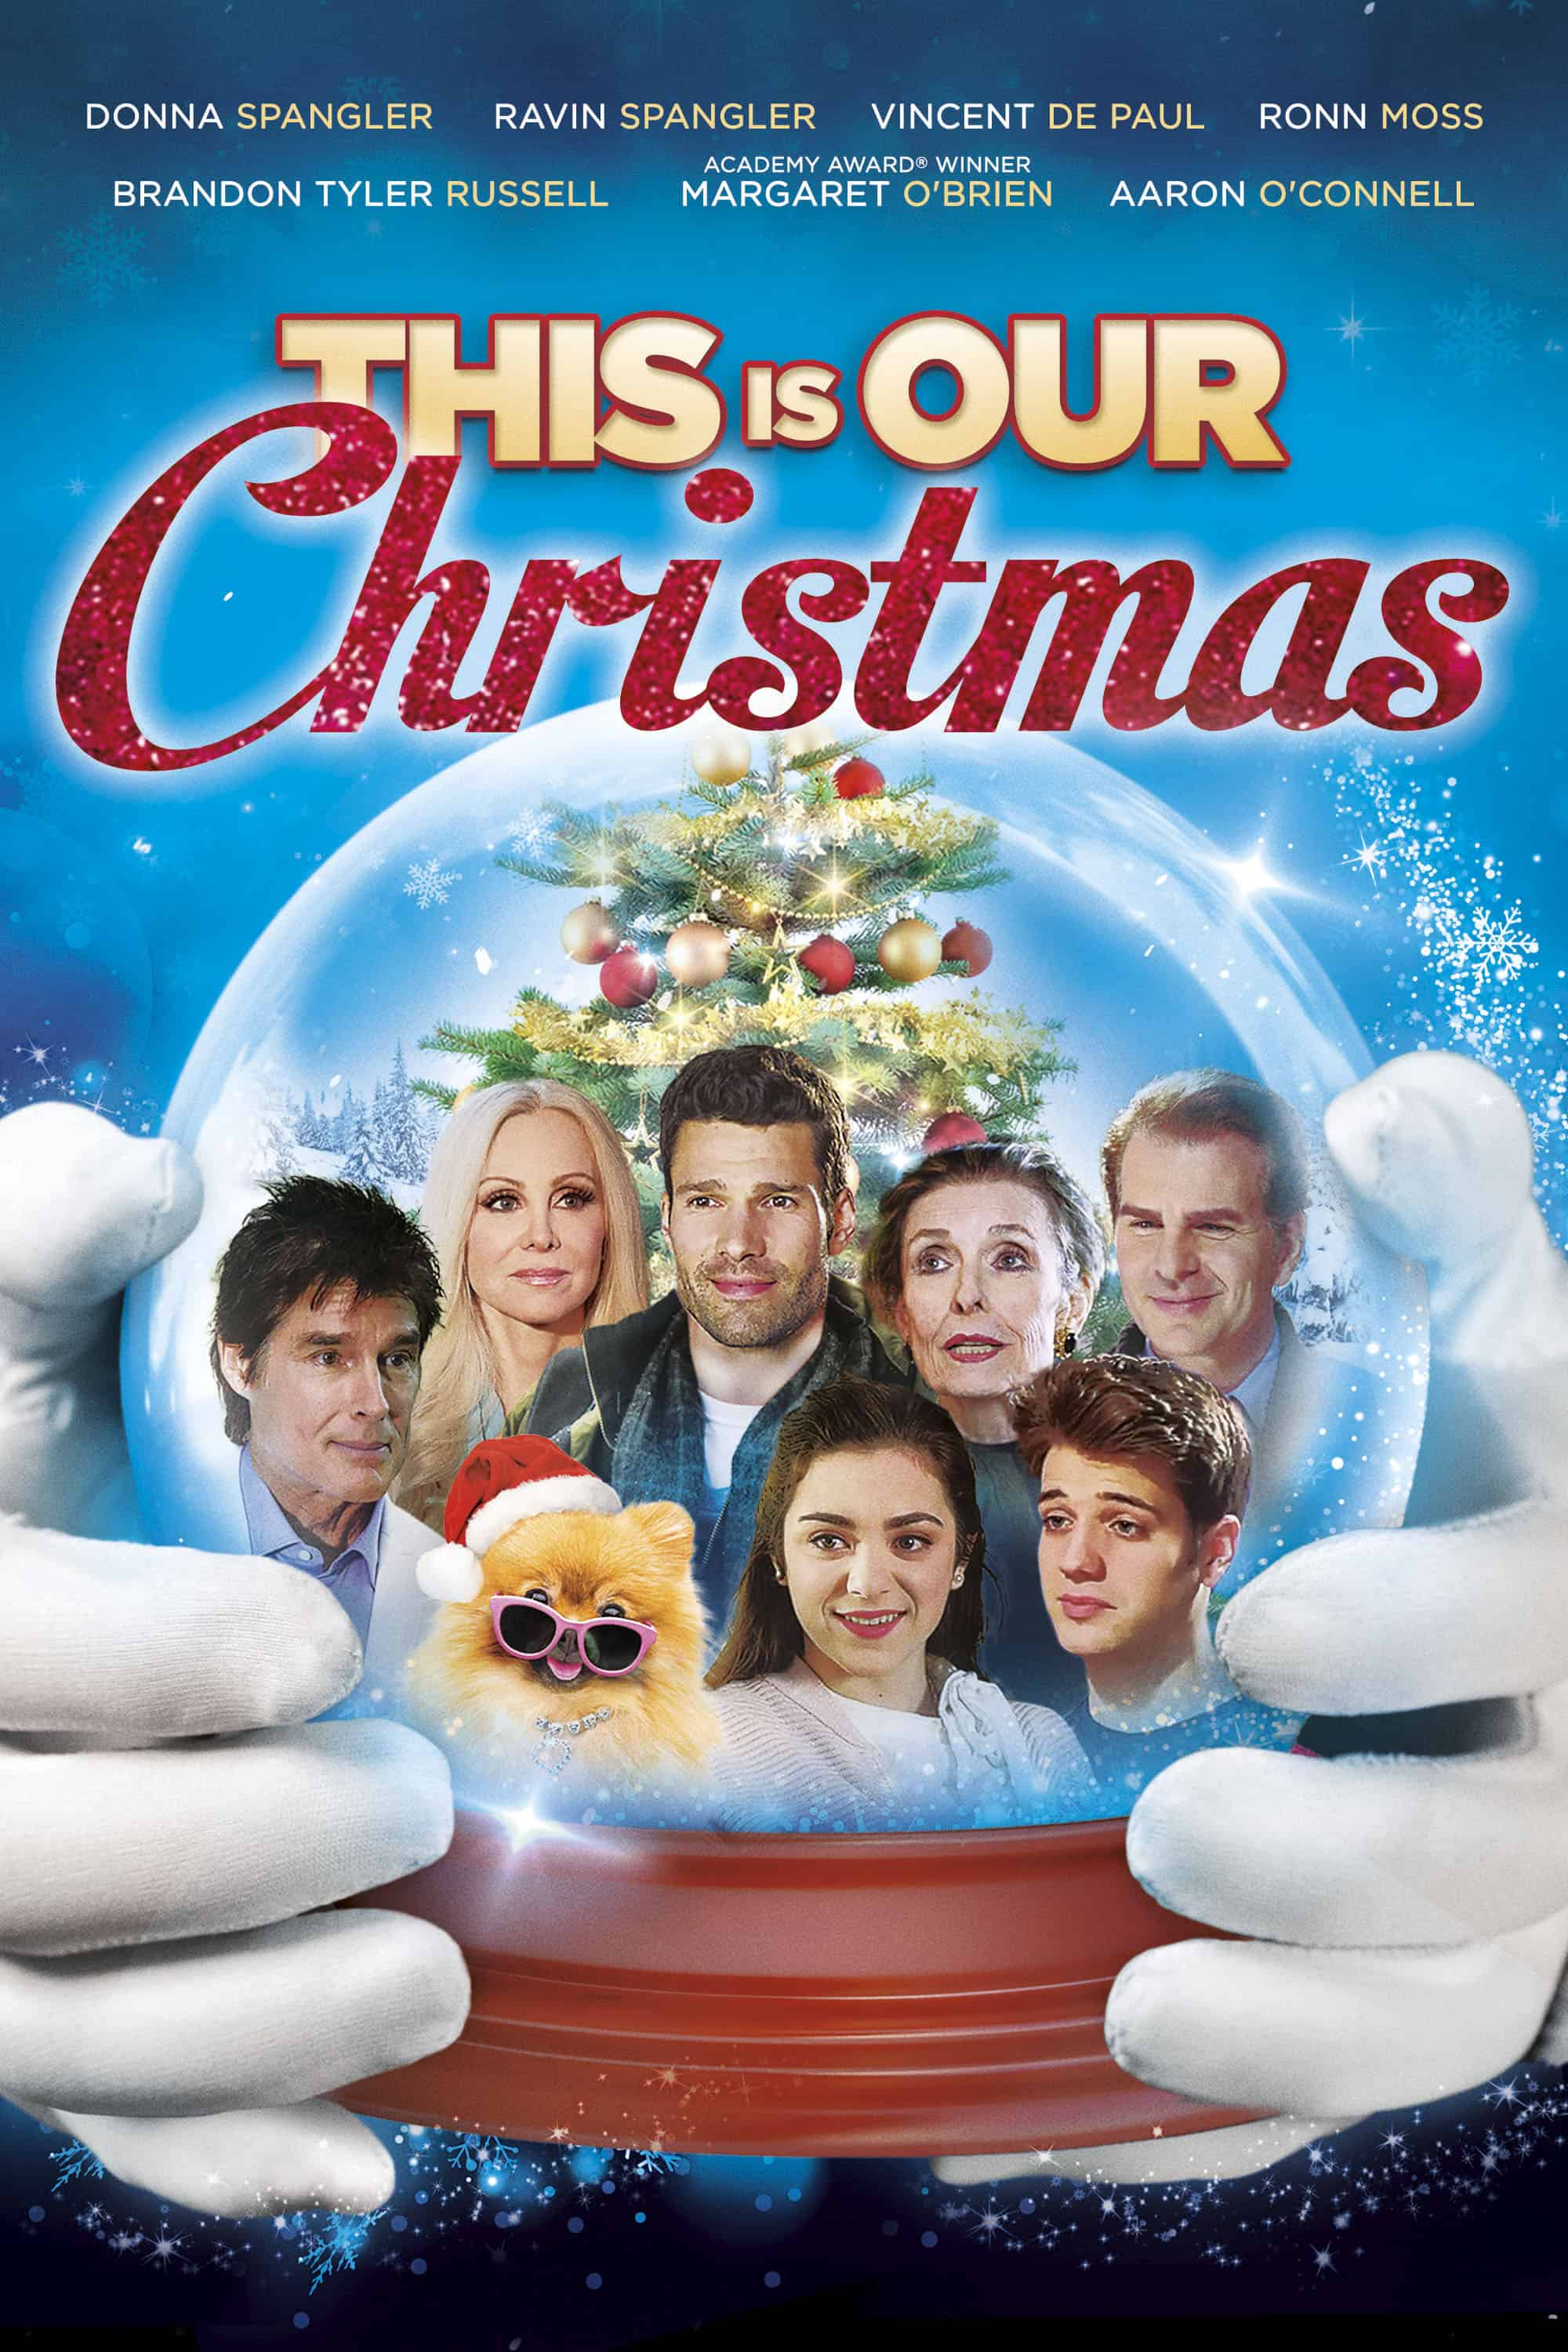 """This Is Our Christmas"" was released on DVD in November. Image provided by producer."